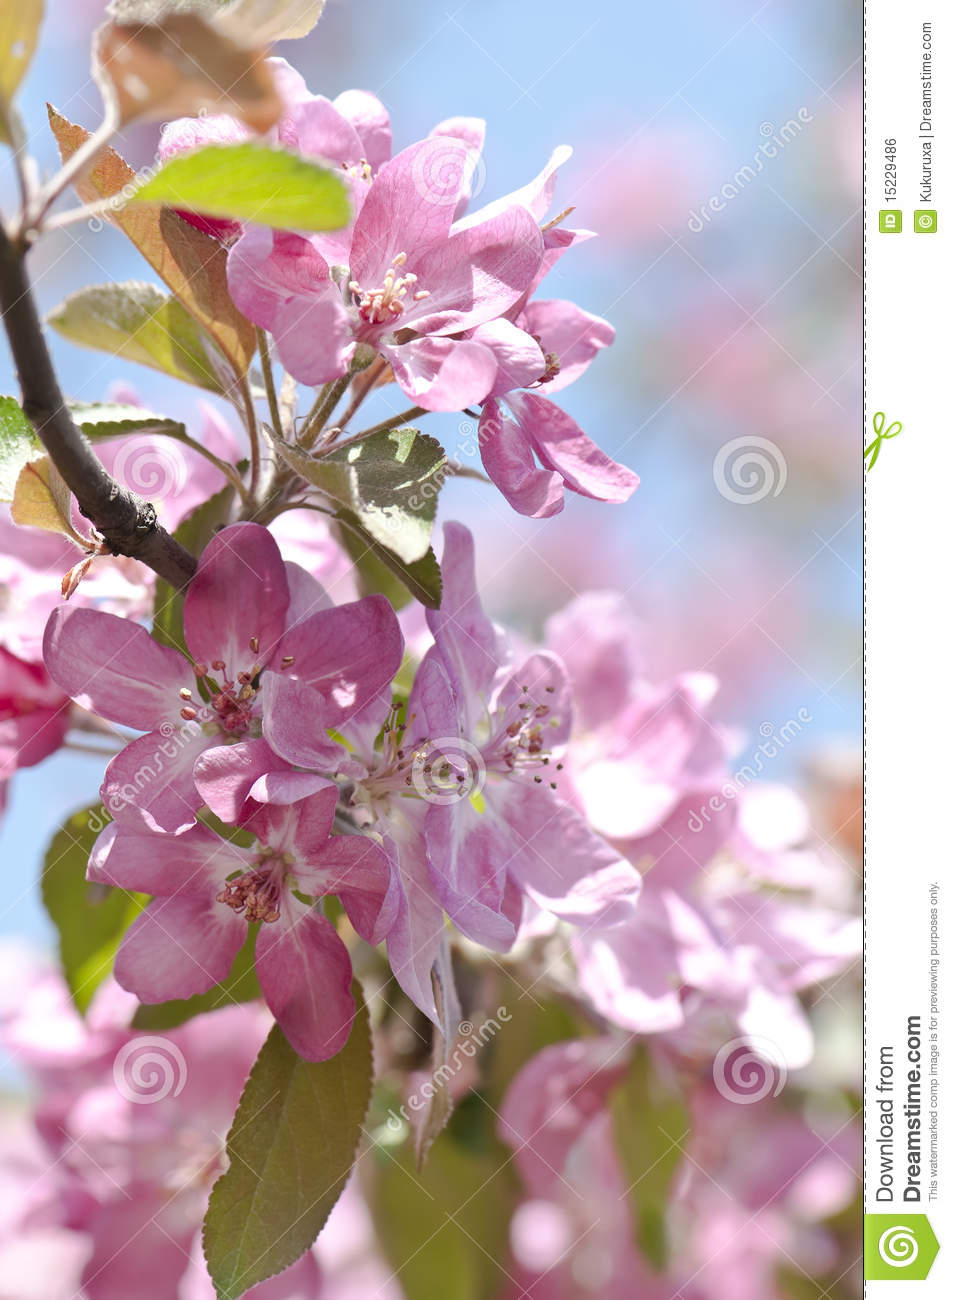 More similar stock images of blooming branch of fruit tree